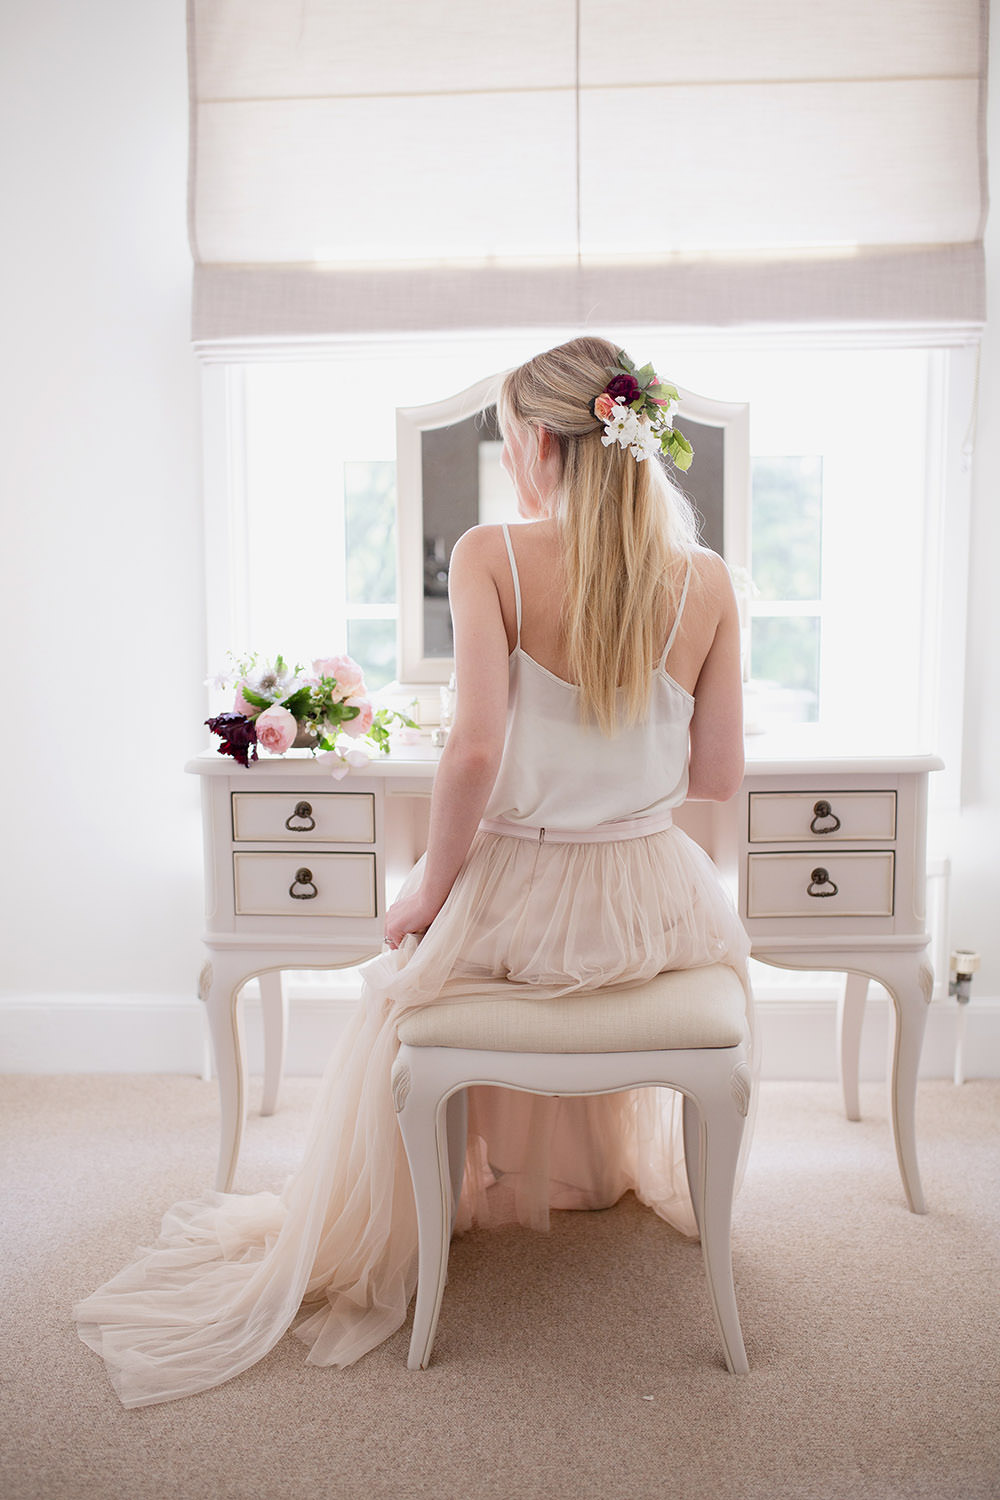 Bride Bridal Prep Morning Dressing Table Light Airy Summer Wedding Ideas Charlotte Palazzo Photography